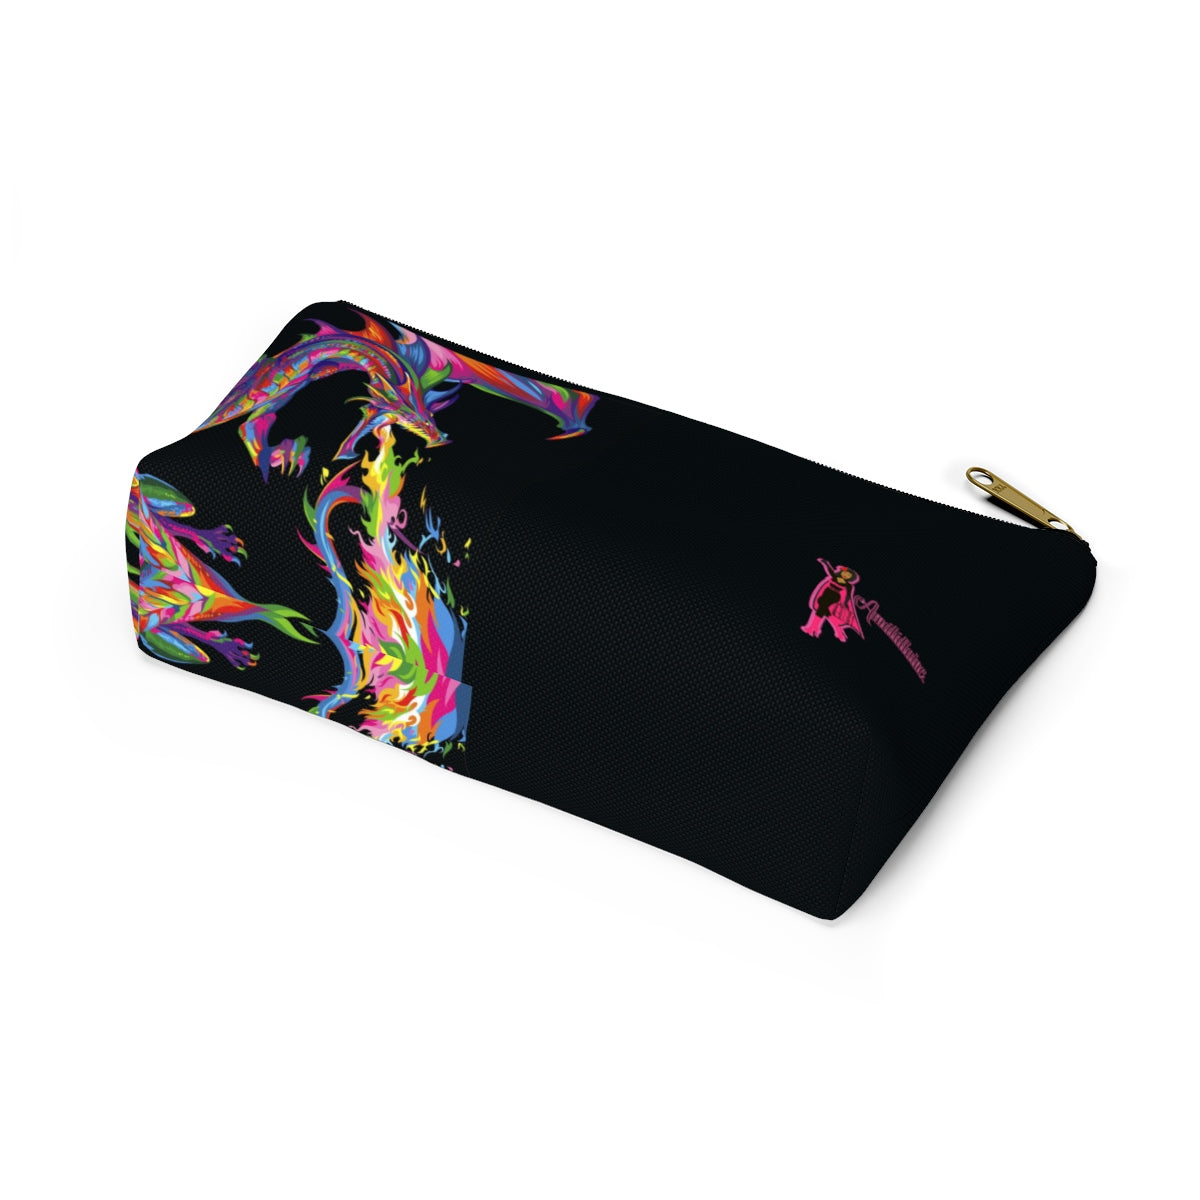 Amatullainc. Fantasy Accessory Pouches are custom-made-to-order and handcrafted to the highest quality standards. Our t-bottom pouches vary from small to large and can be used for pretty much anything. They make excellent pencil cases and cosmetic travel bags.